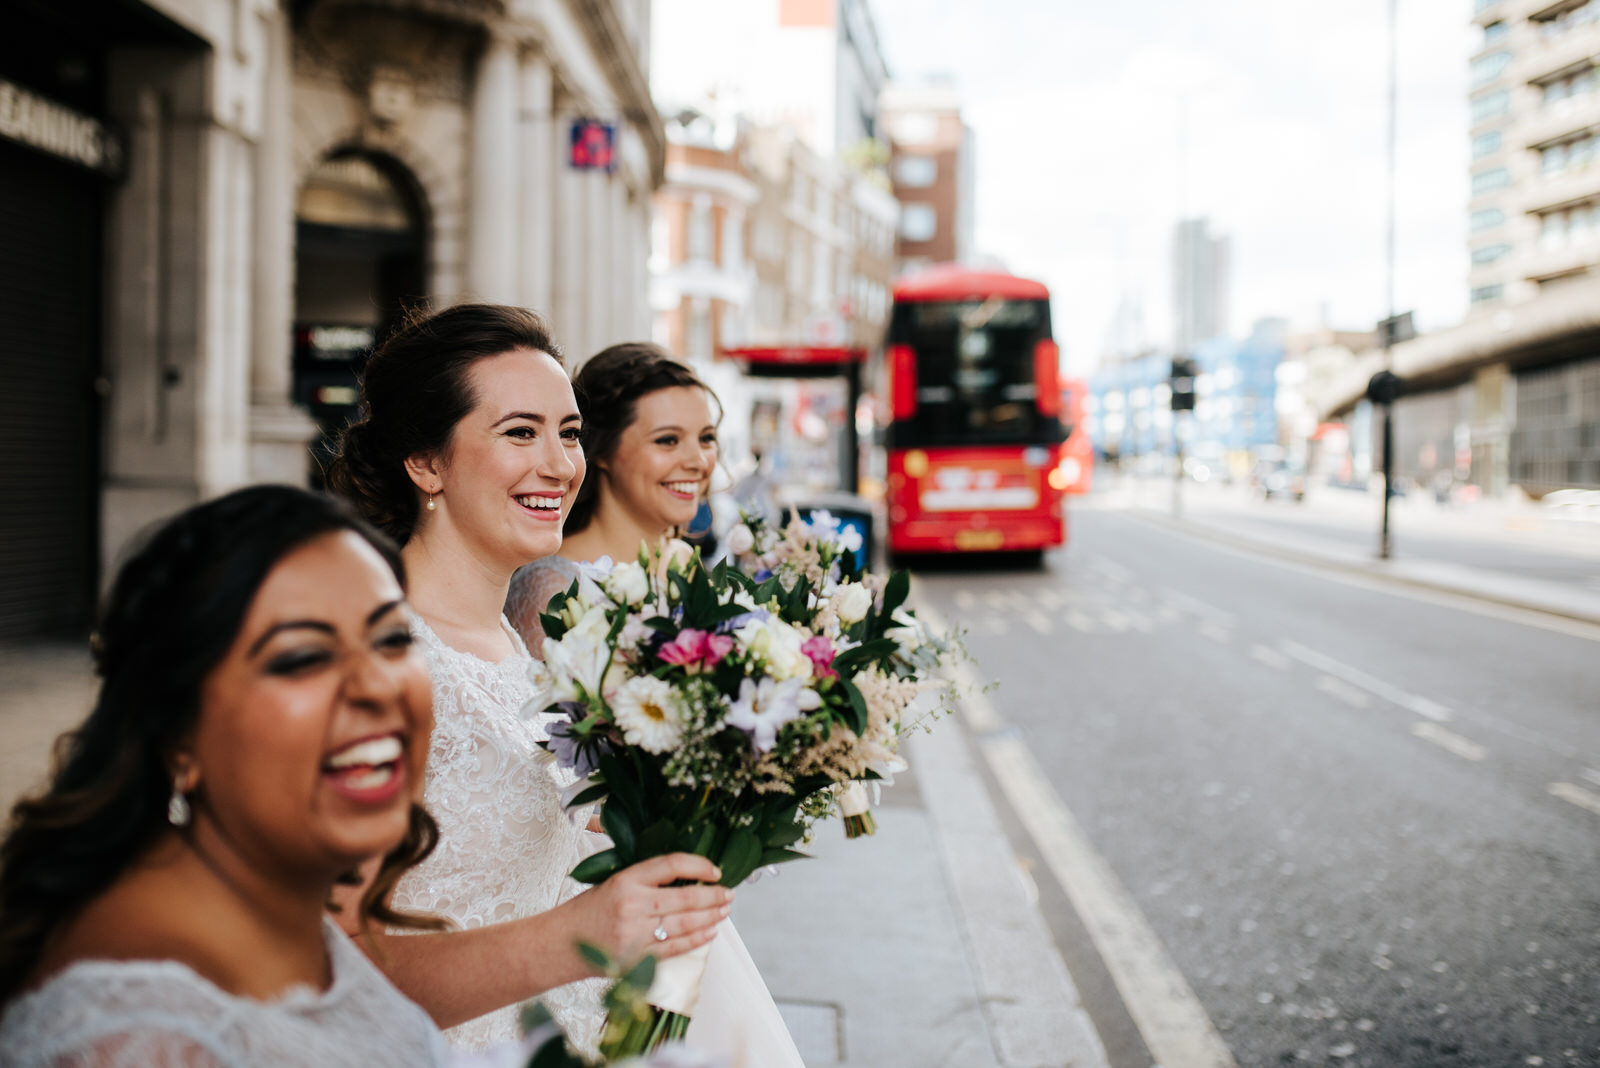 Bride and bridesmaids wait to cross the road in London to arrive